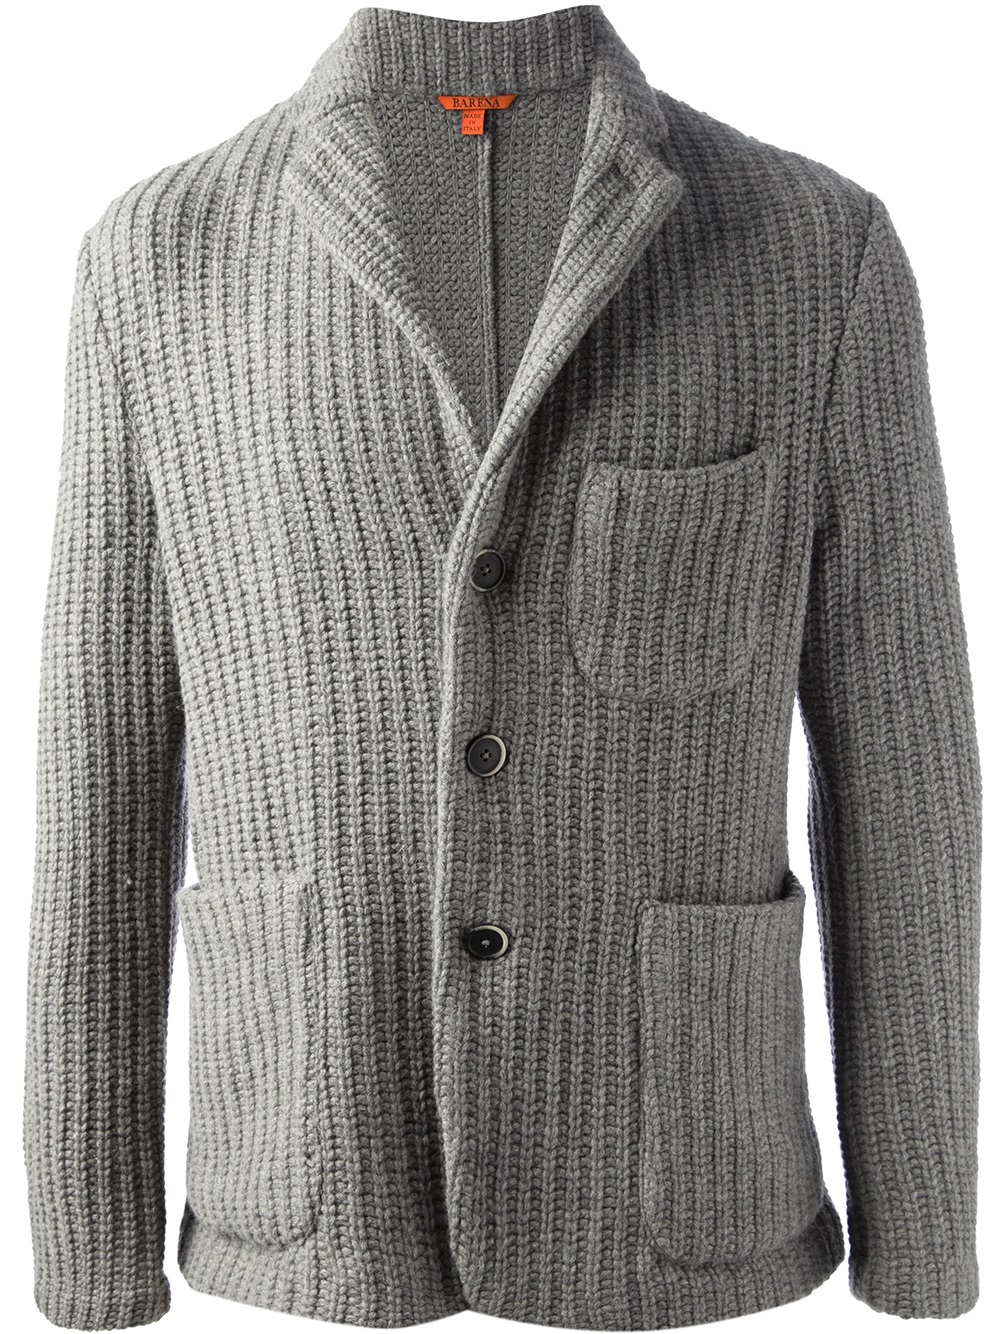 Barena Knitted Blazer In Gray For Men Lyst